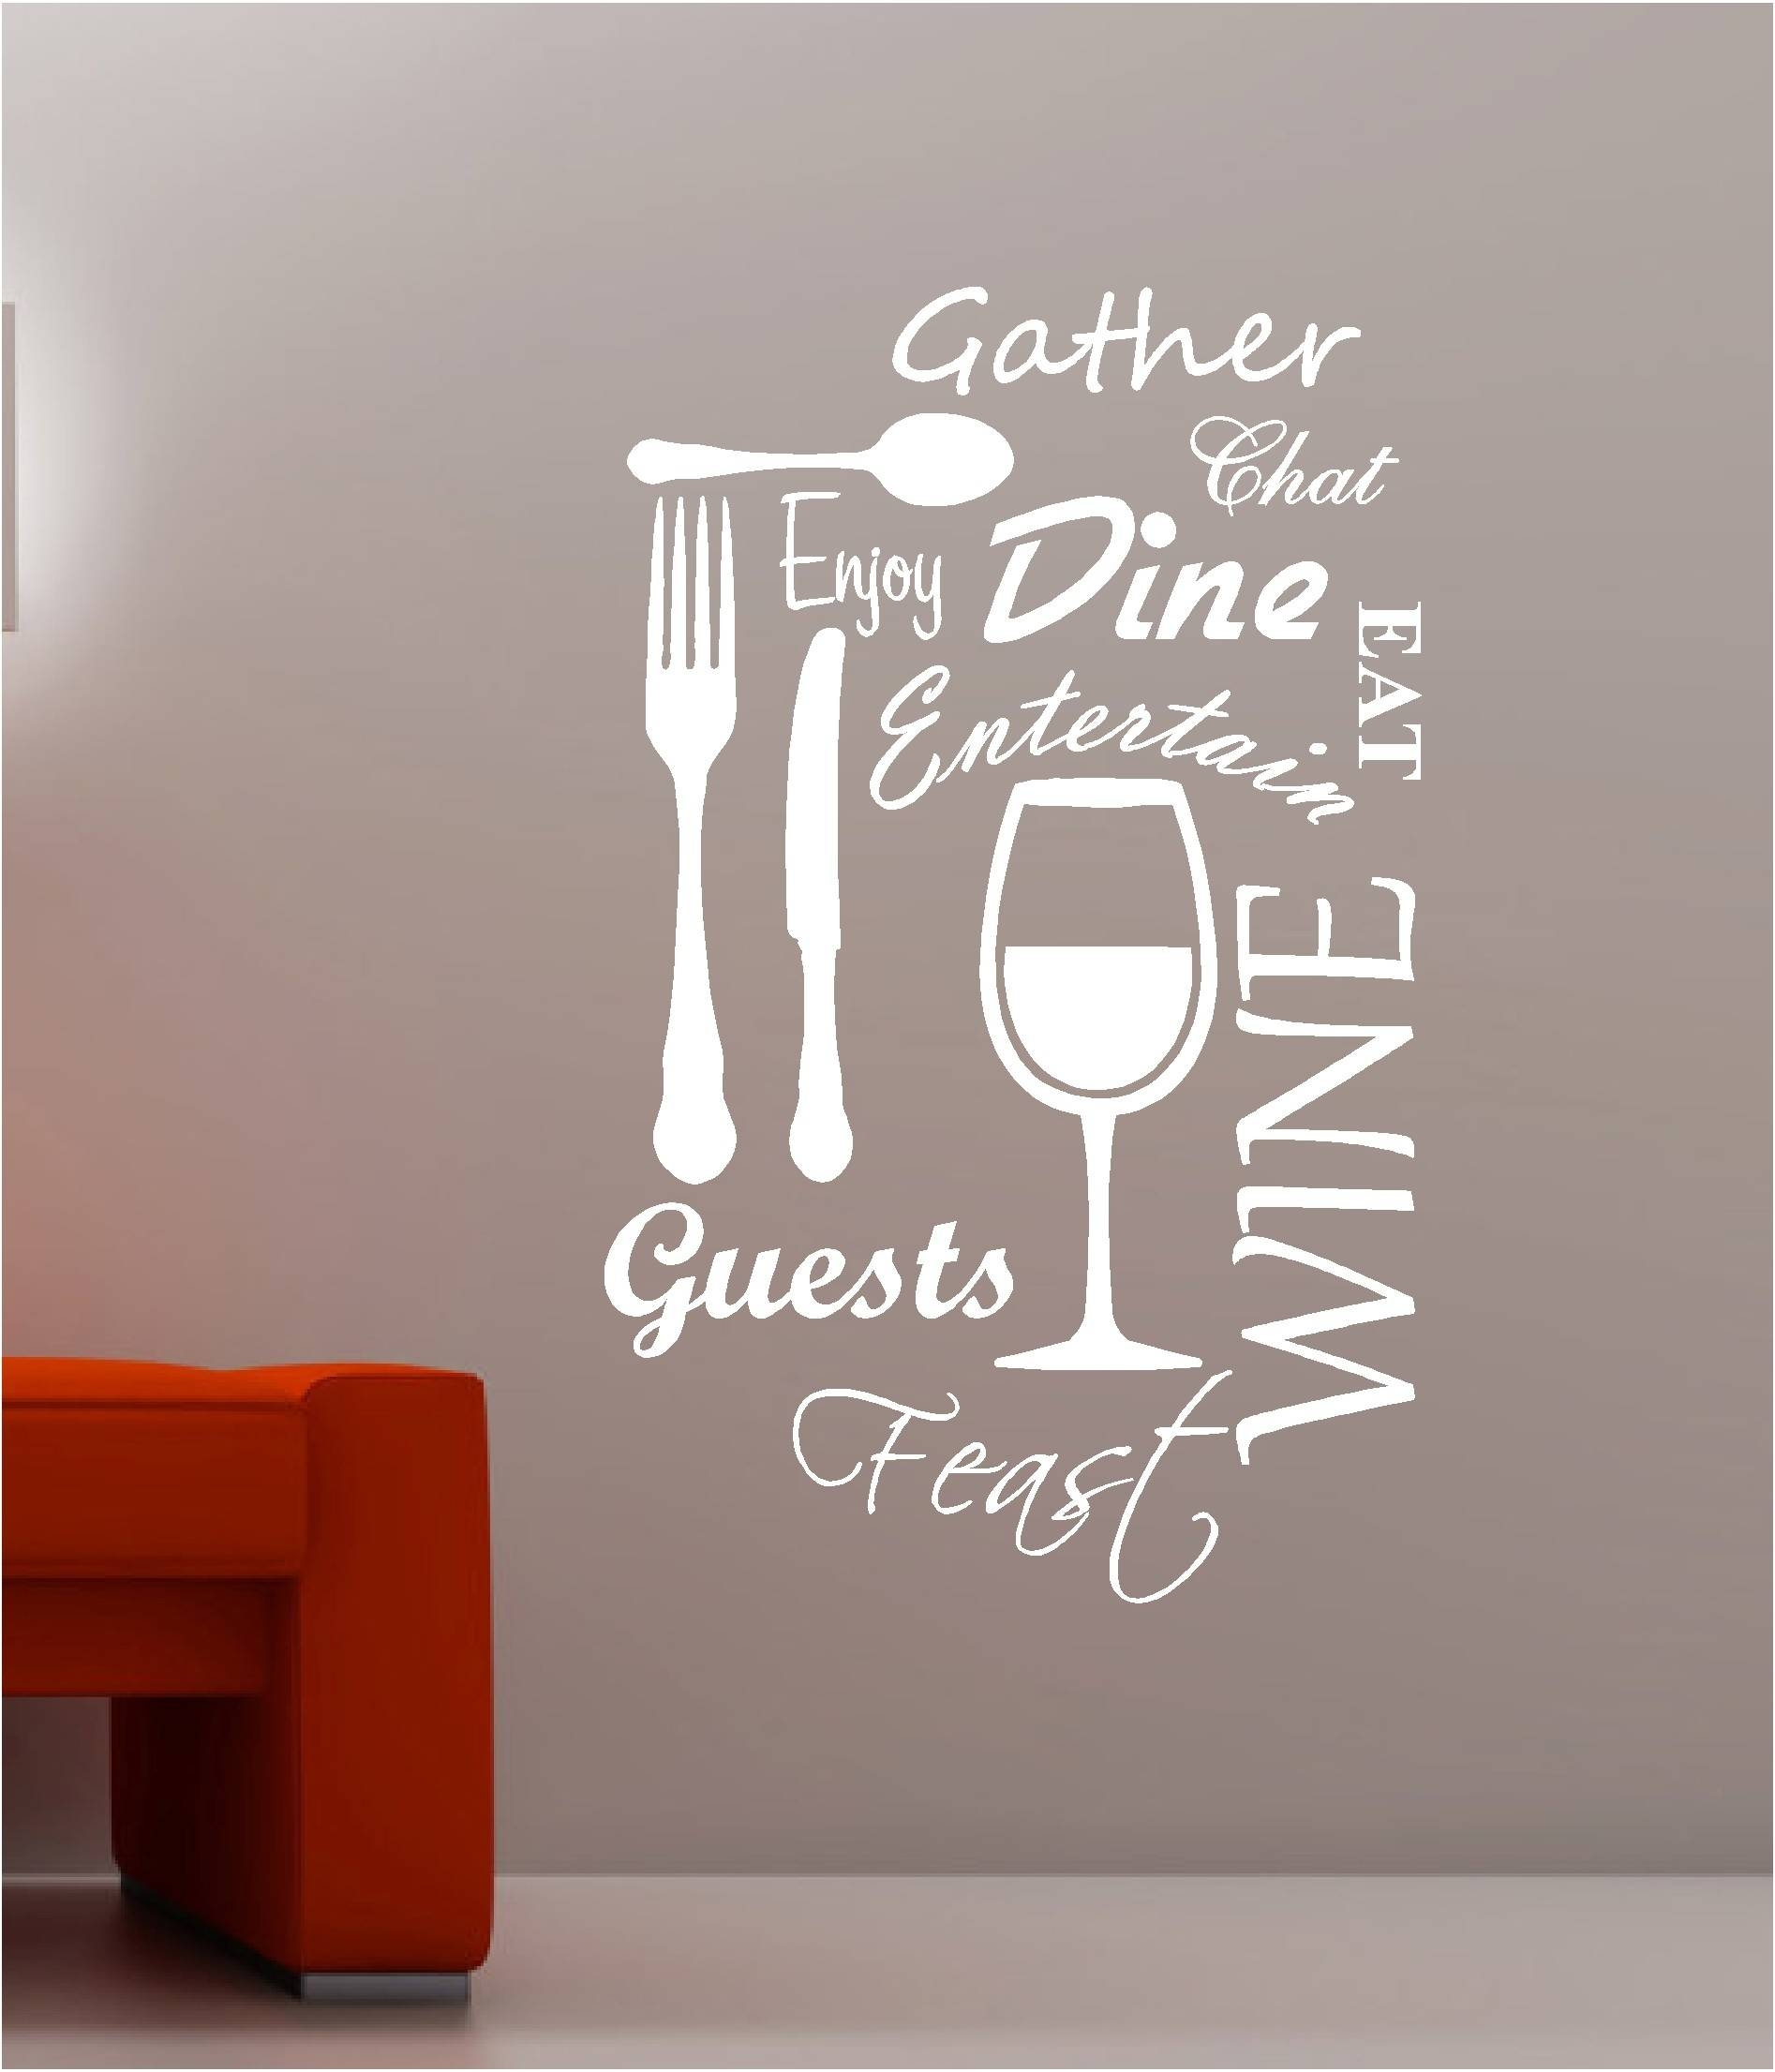 Best Wall Art For Kitchen Online   Kitchen Gallery Image And Wallpaper Pertaining To Most Popular 3d Wall Art For Kitchen (View 8 of 20)